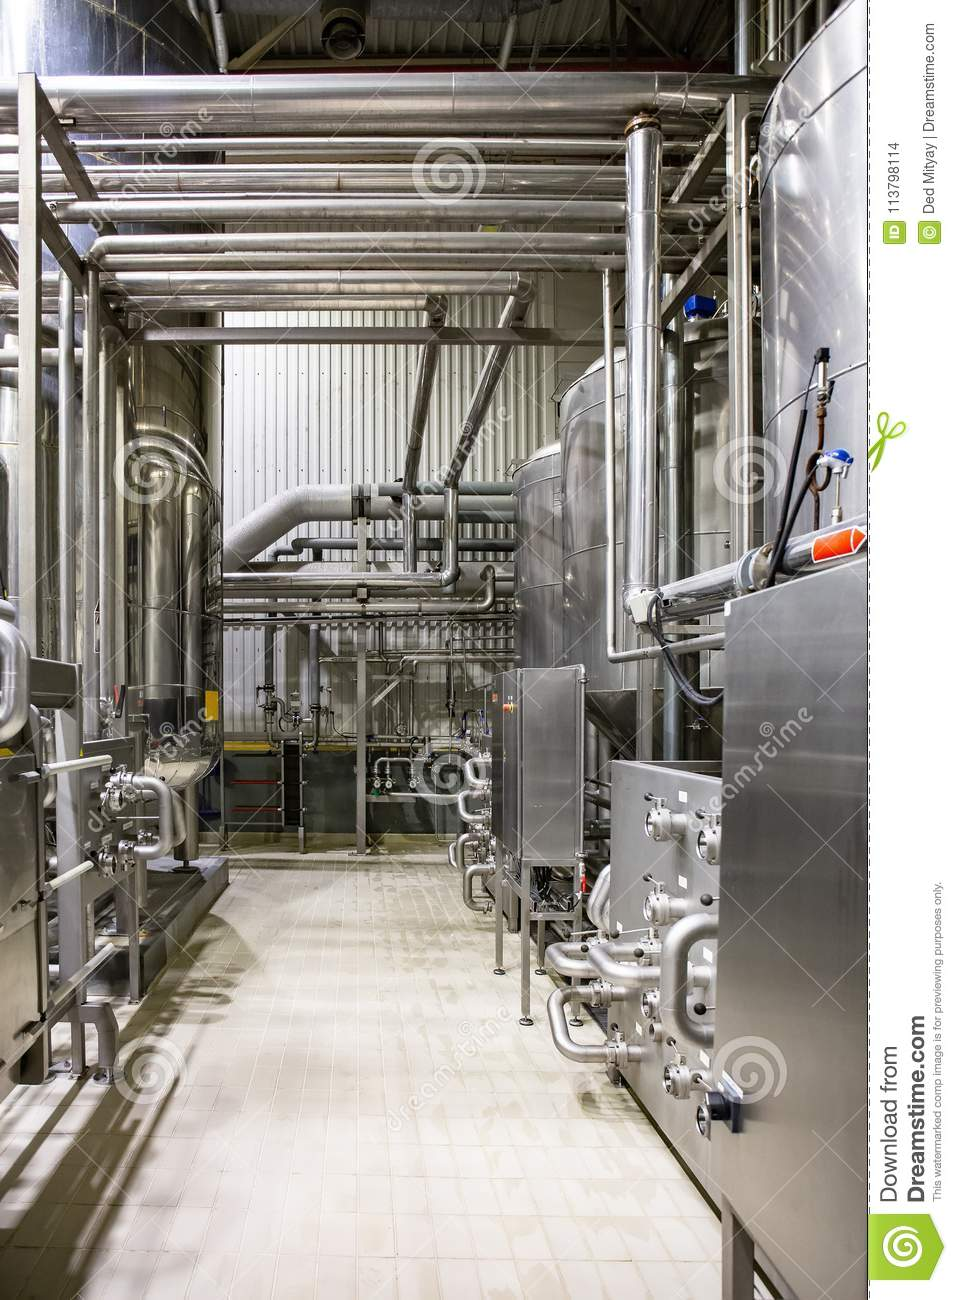 Modern Brewery, Steel Vats And Pipeline, Other Equipment Machinery Tools  For Beer Production